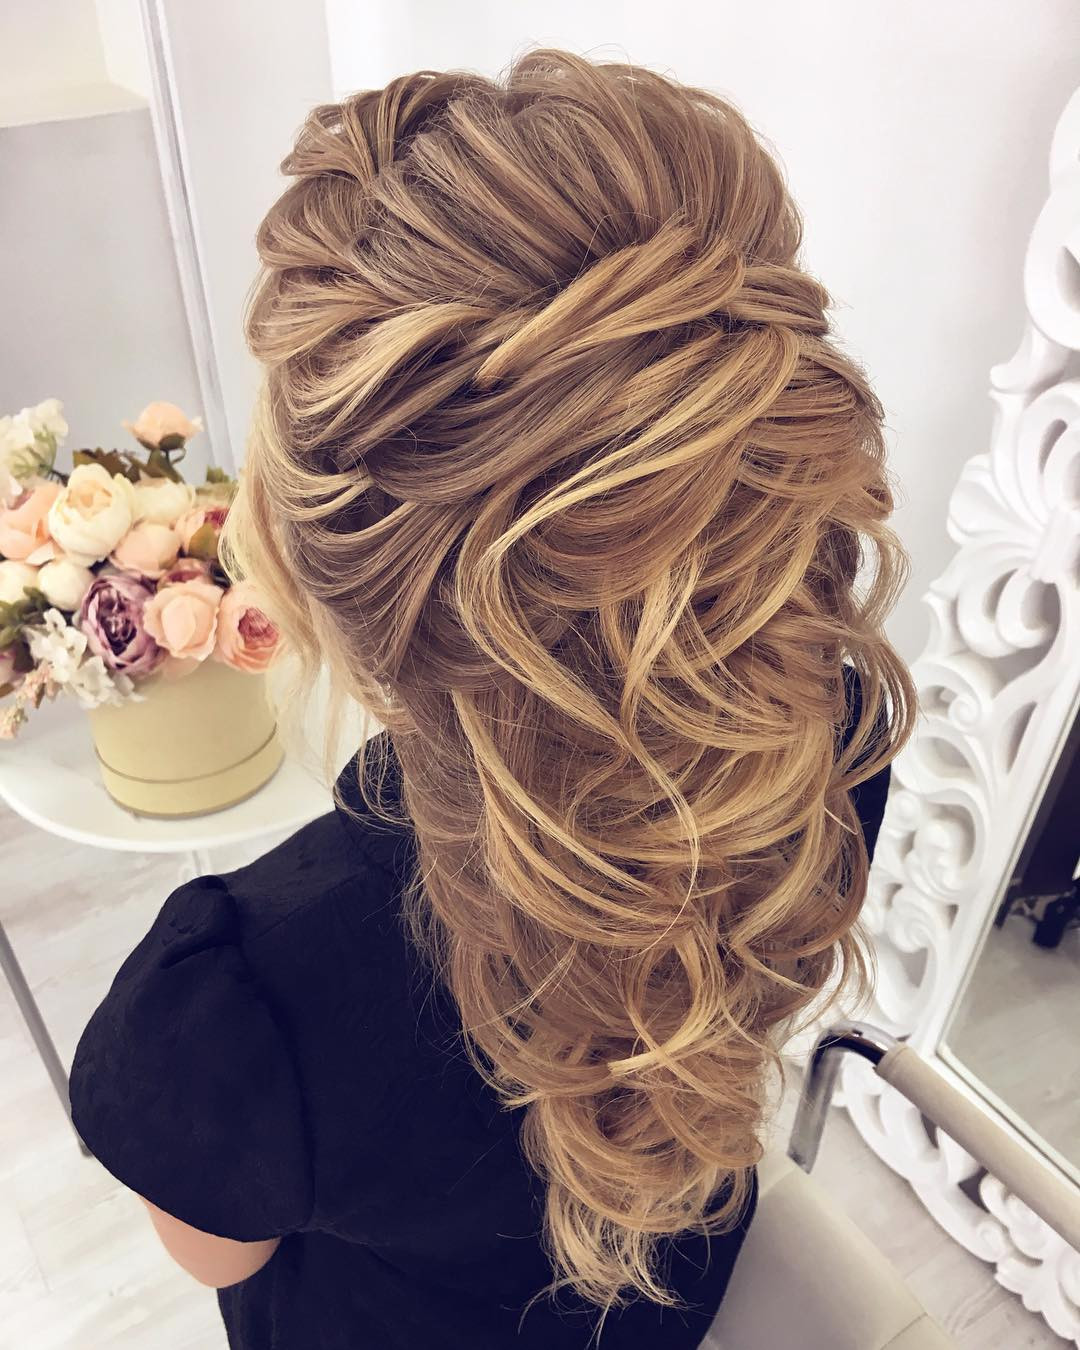 38 Gorgeous Layered Hairstyles for Longer Hair,long hairstyles for girls,long hairstyles for women,easy long hairstyles